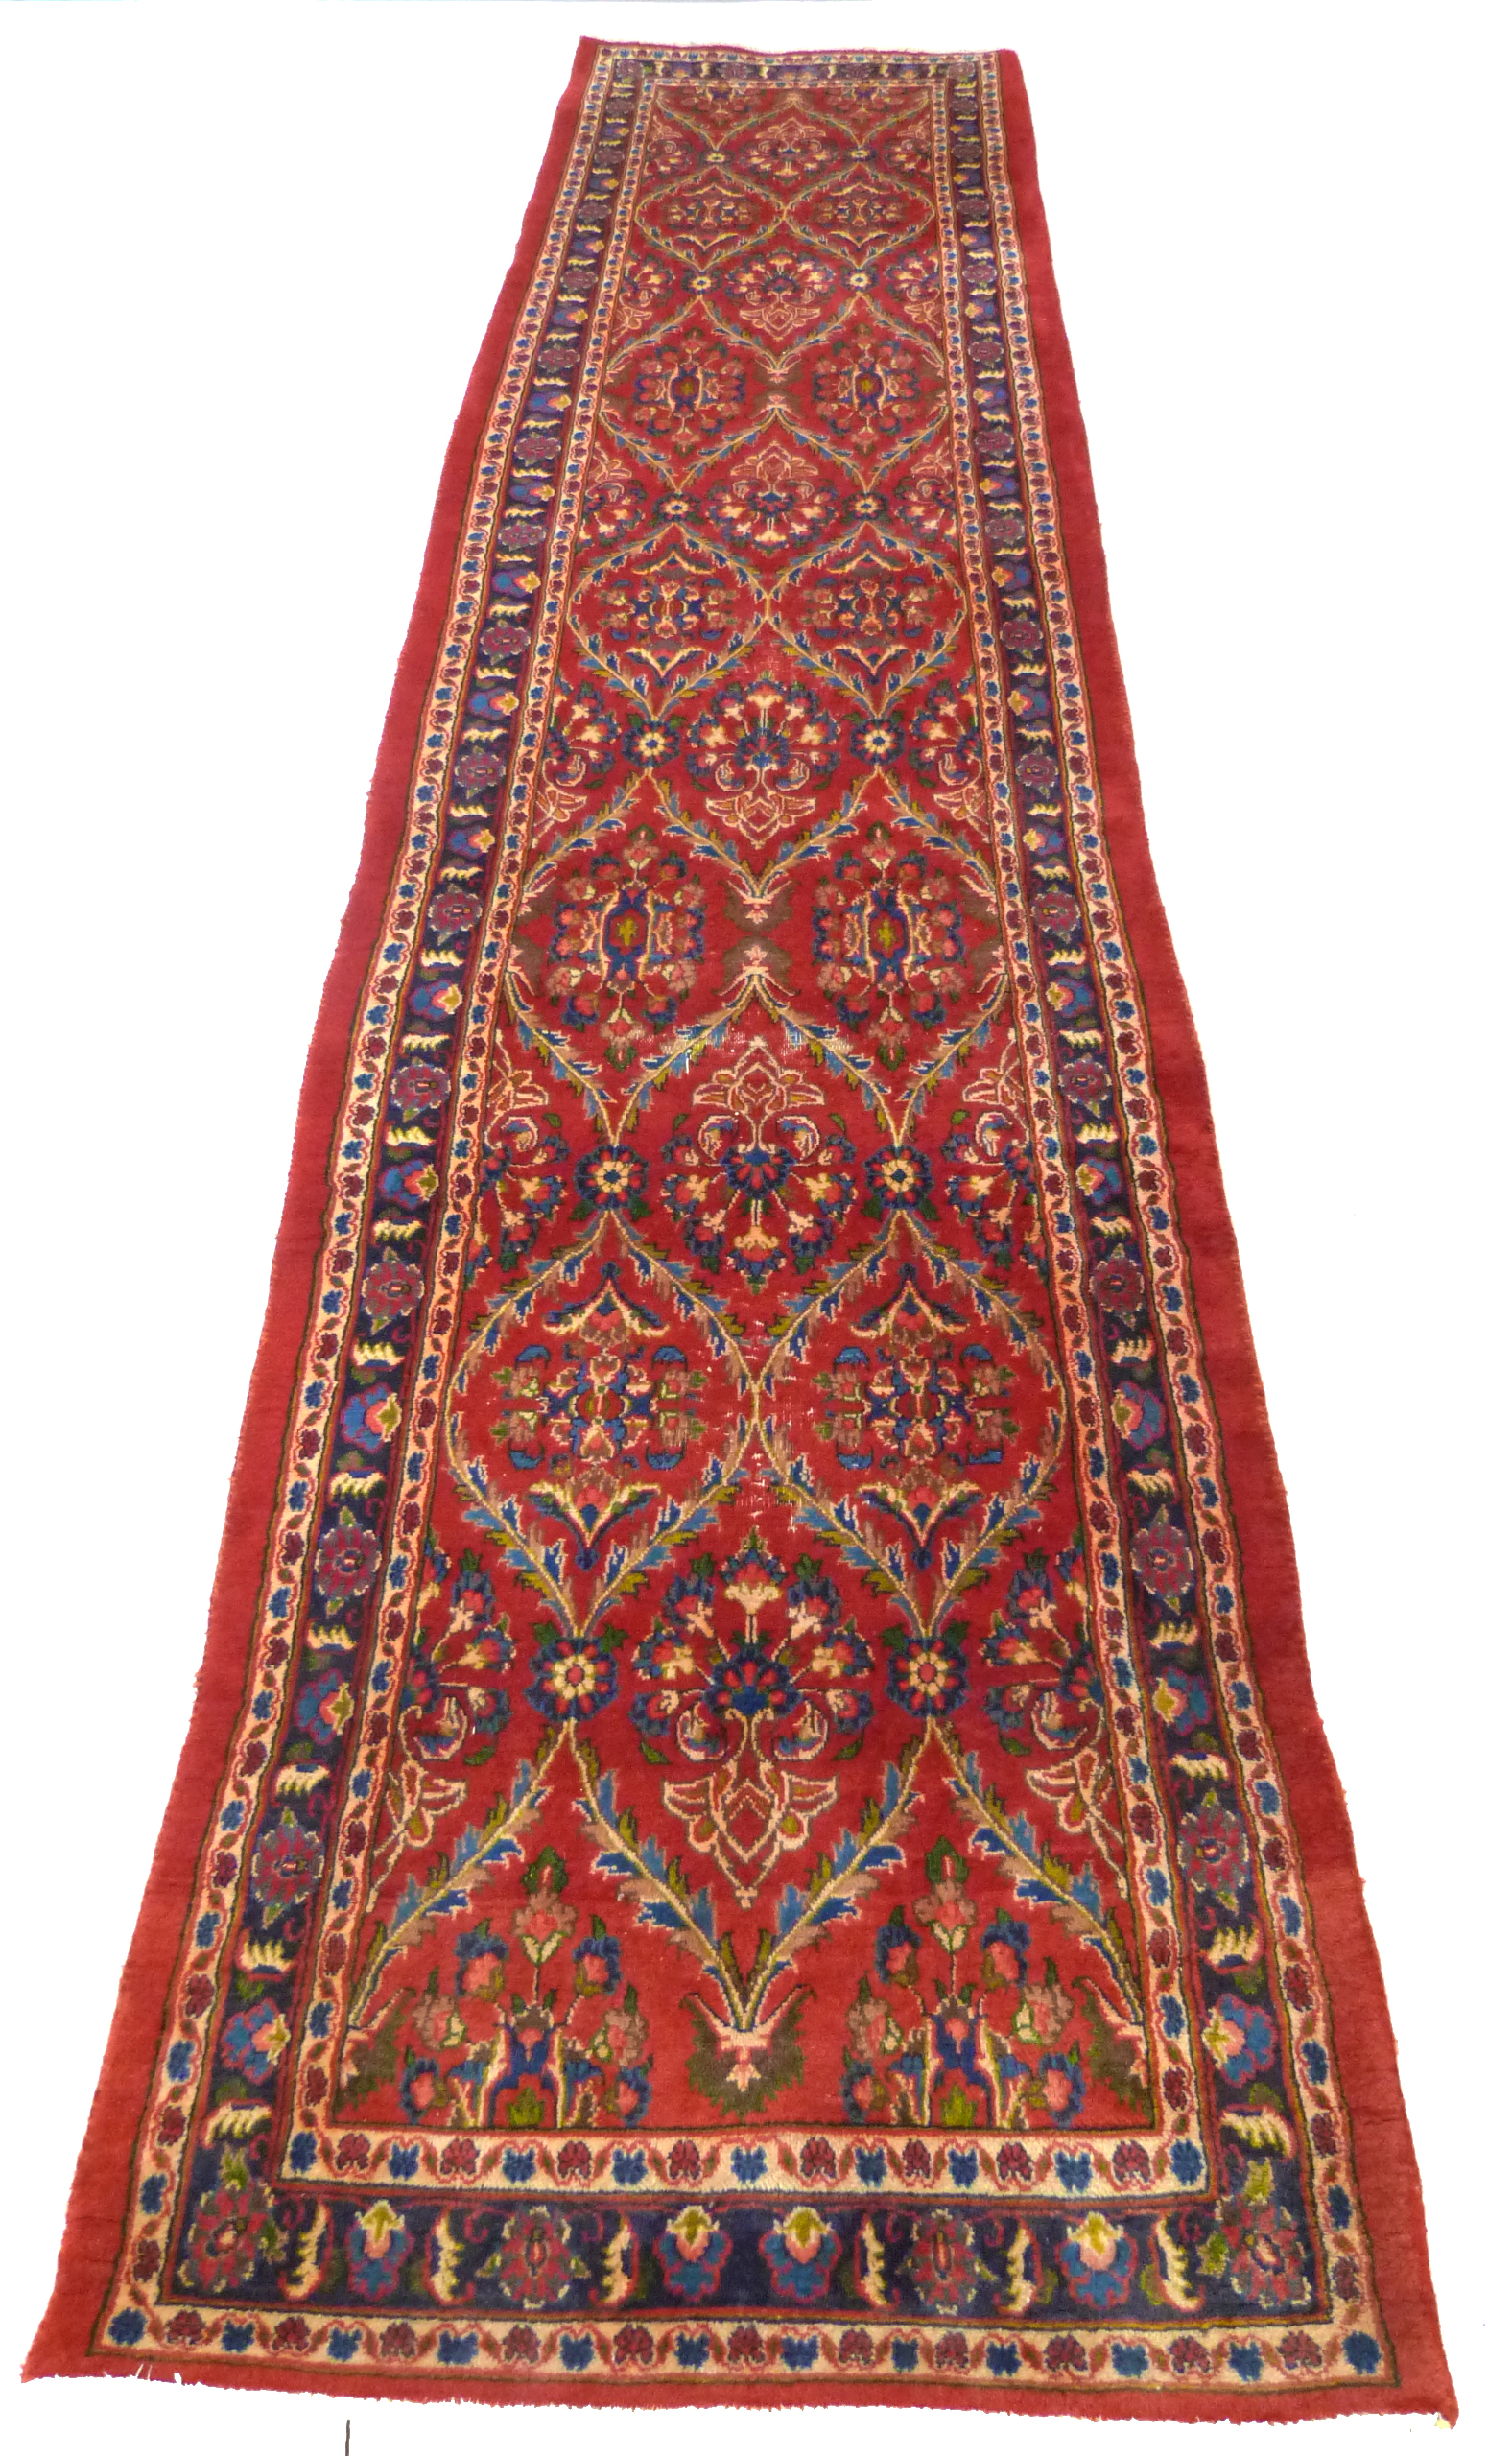 Large red ground Persian Kashan Runner, with all-over floral pattern 397cm x 93cm approximately No - Image 2 of 6